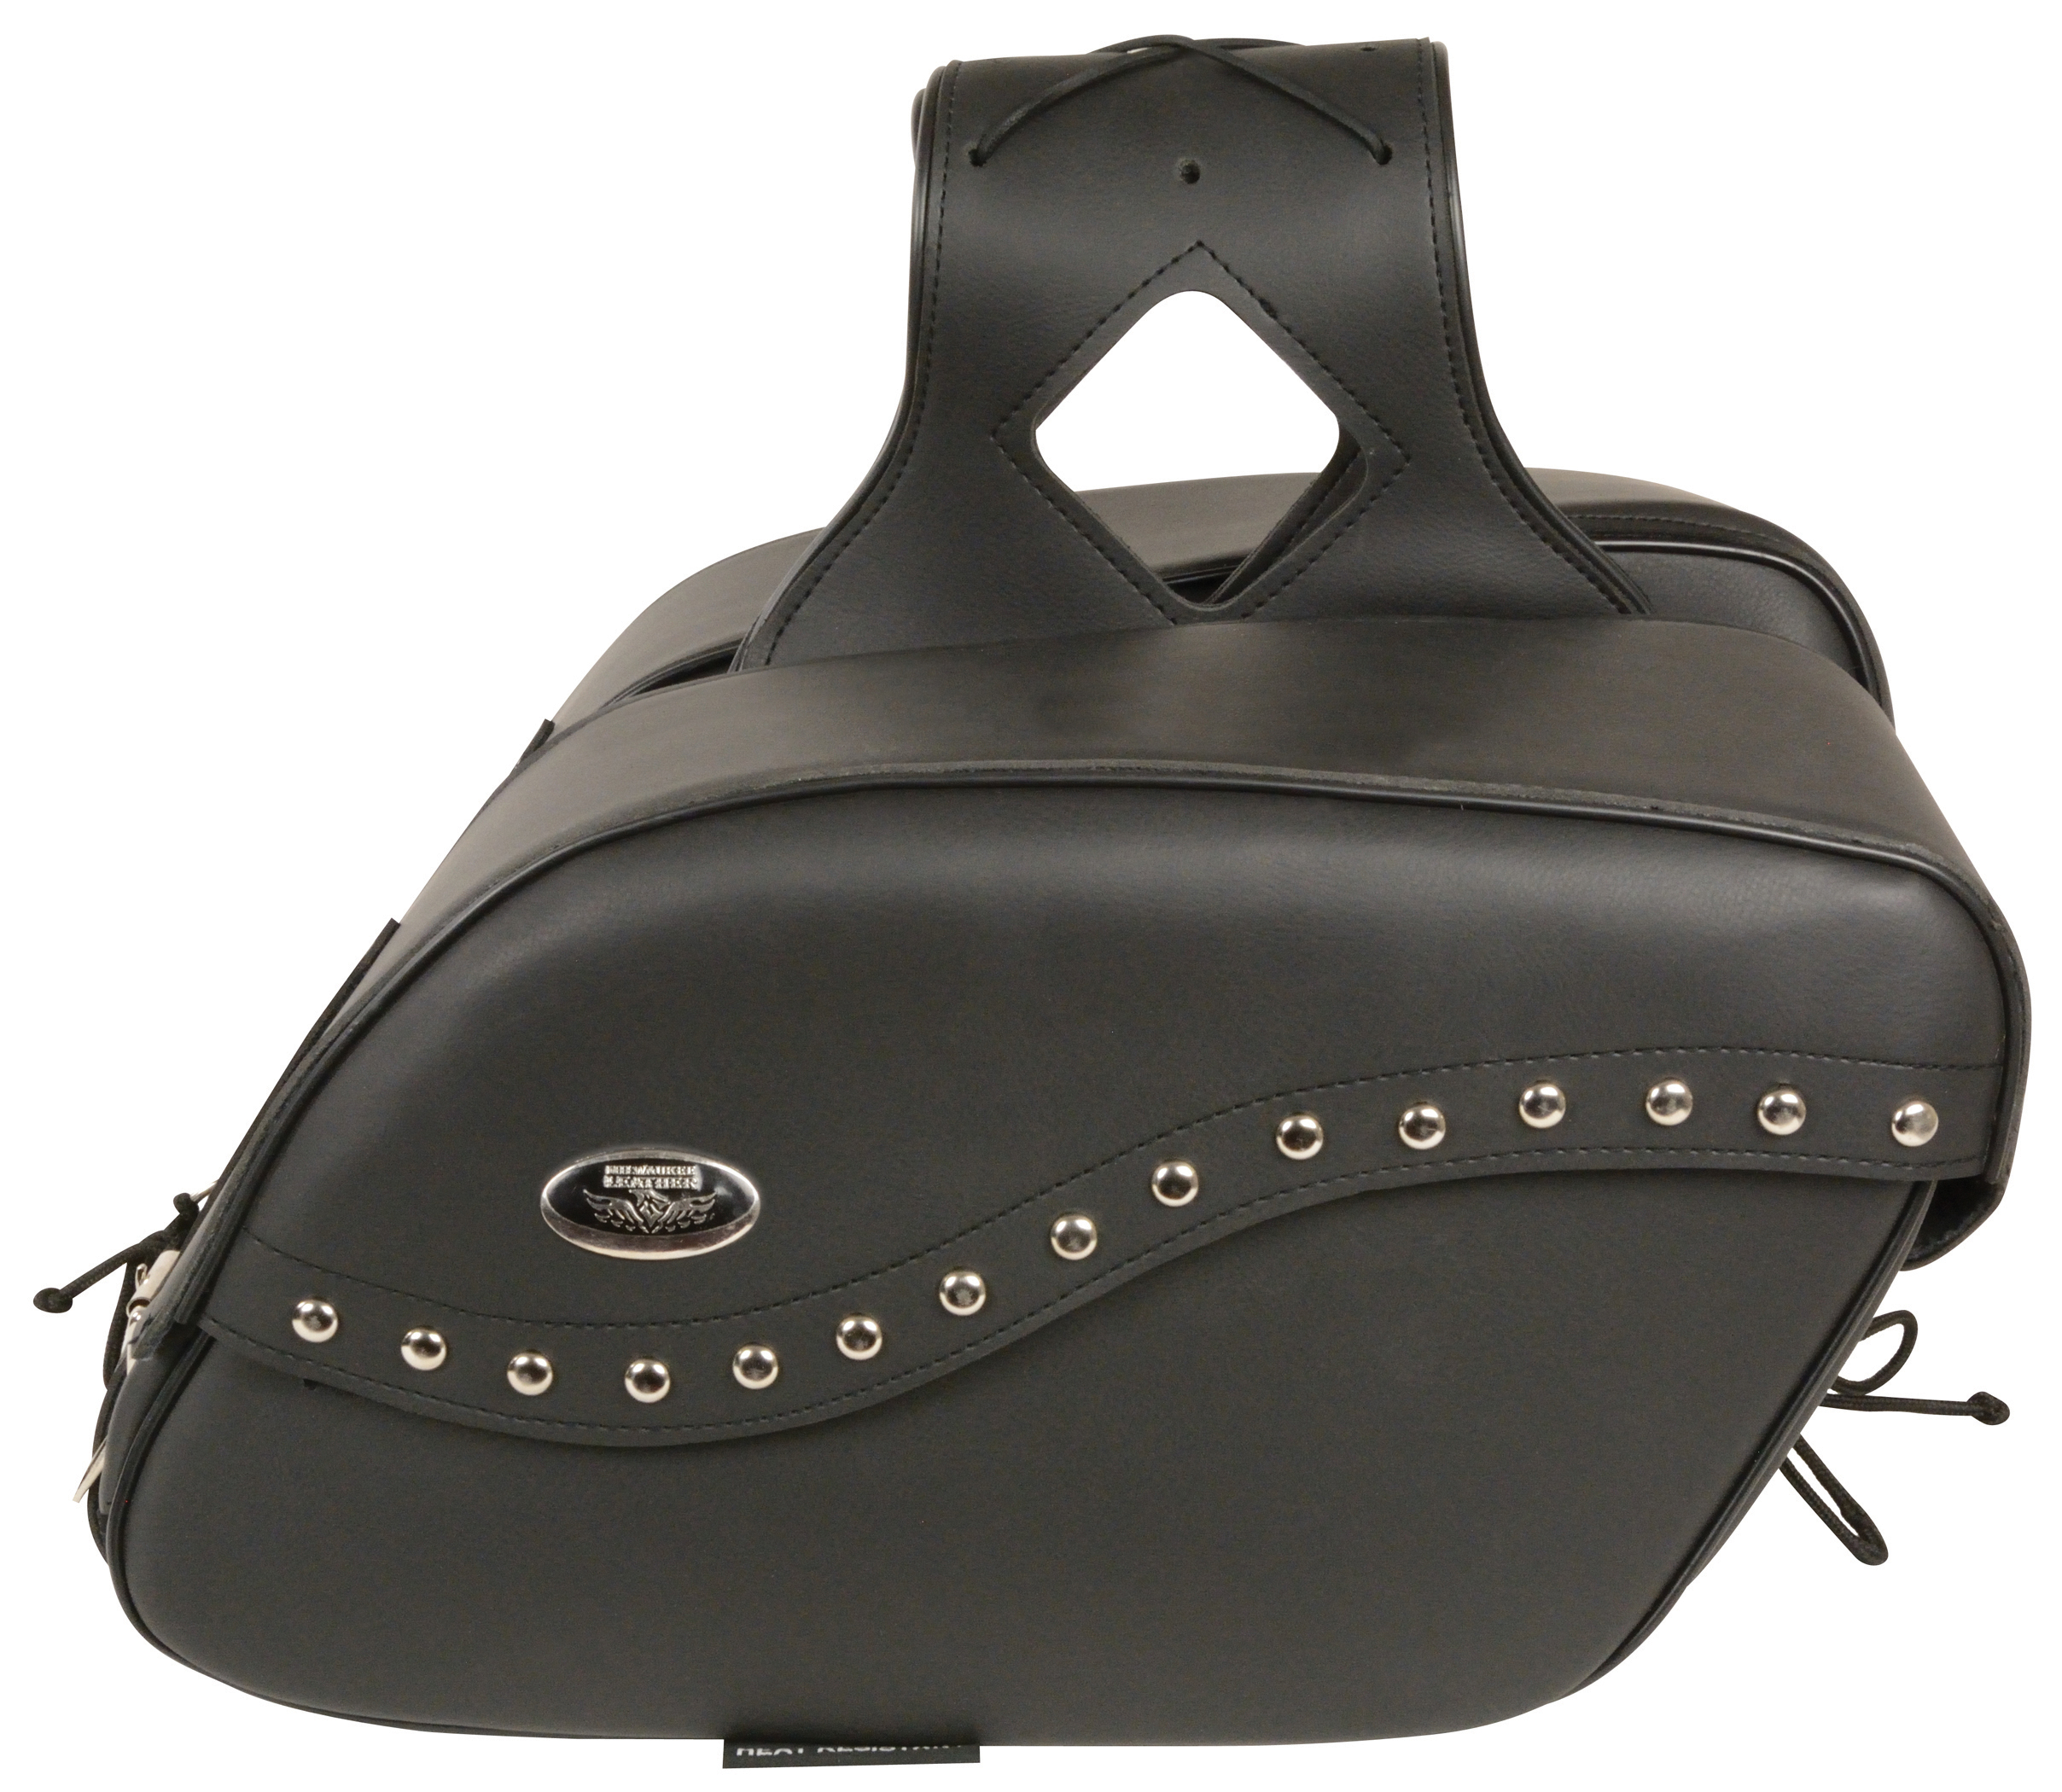 Cheap saddlebags for motorcycles